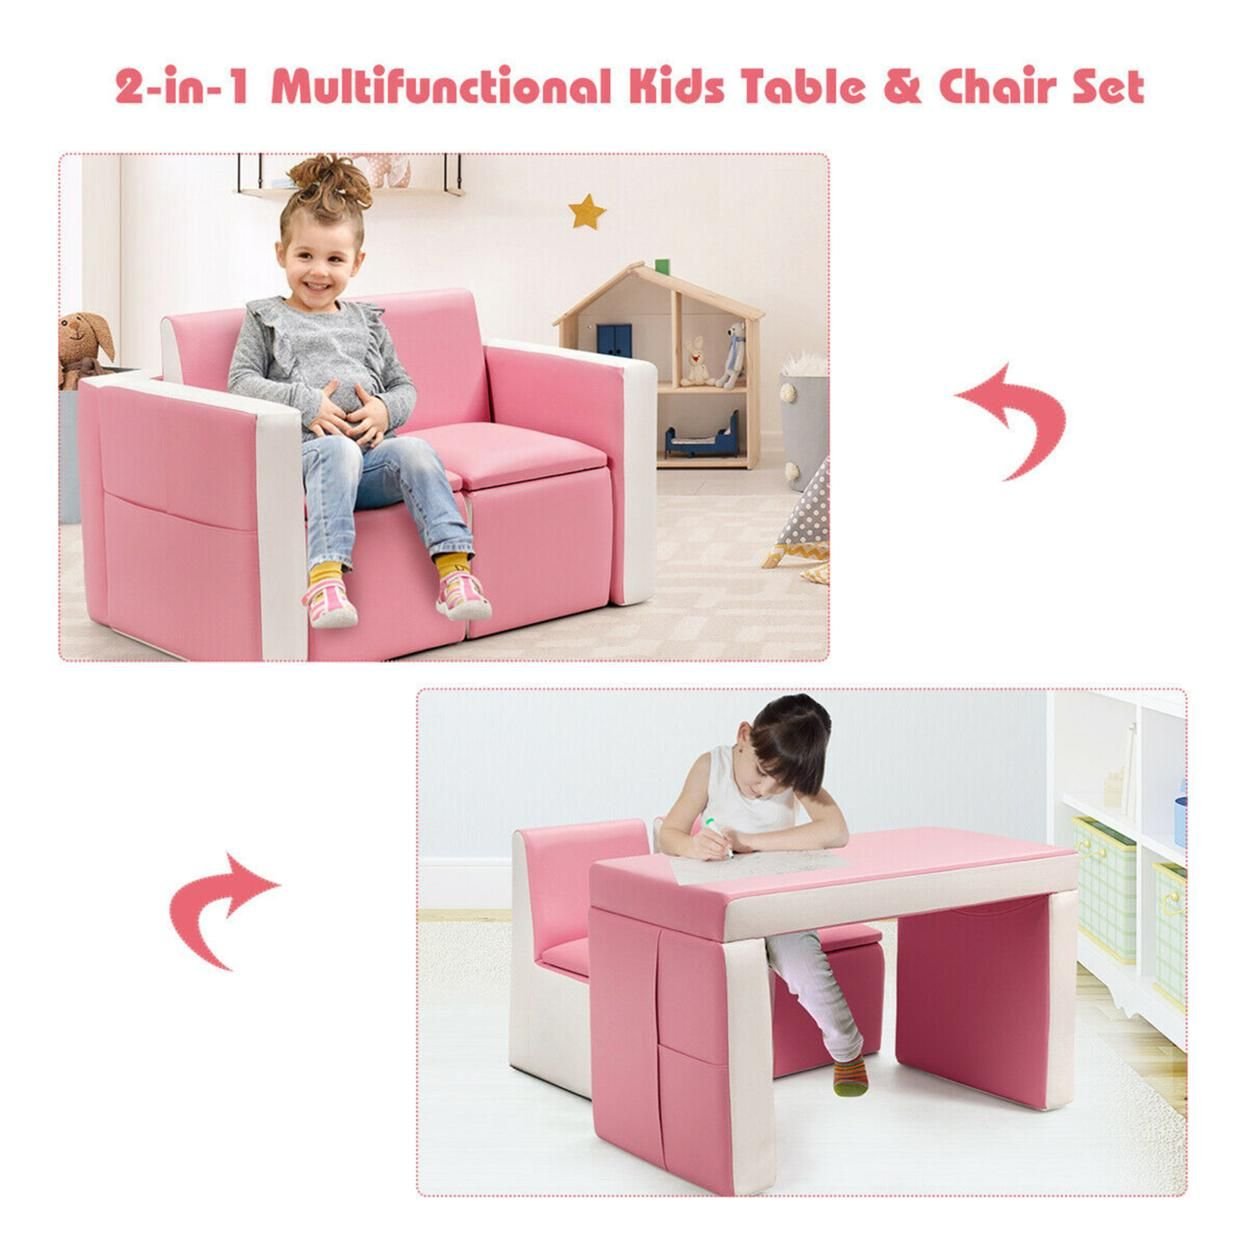 Gymax Multi-functional Kids Sofa Table Chair Set 2 Seat Couch Furniture W/Storage Box